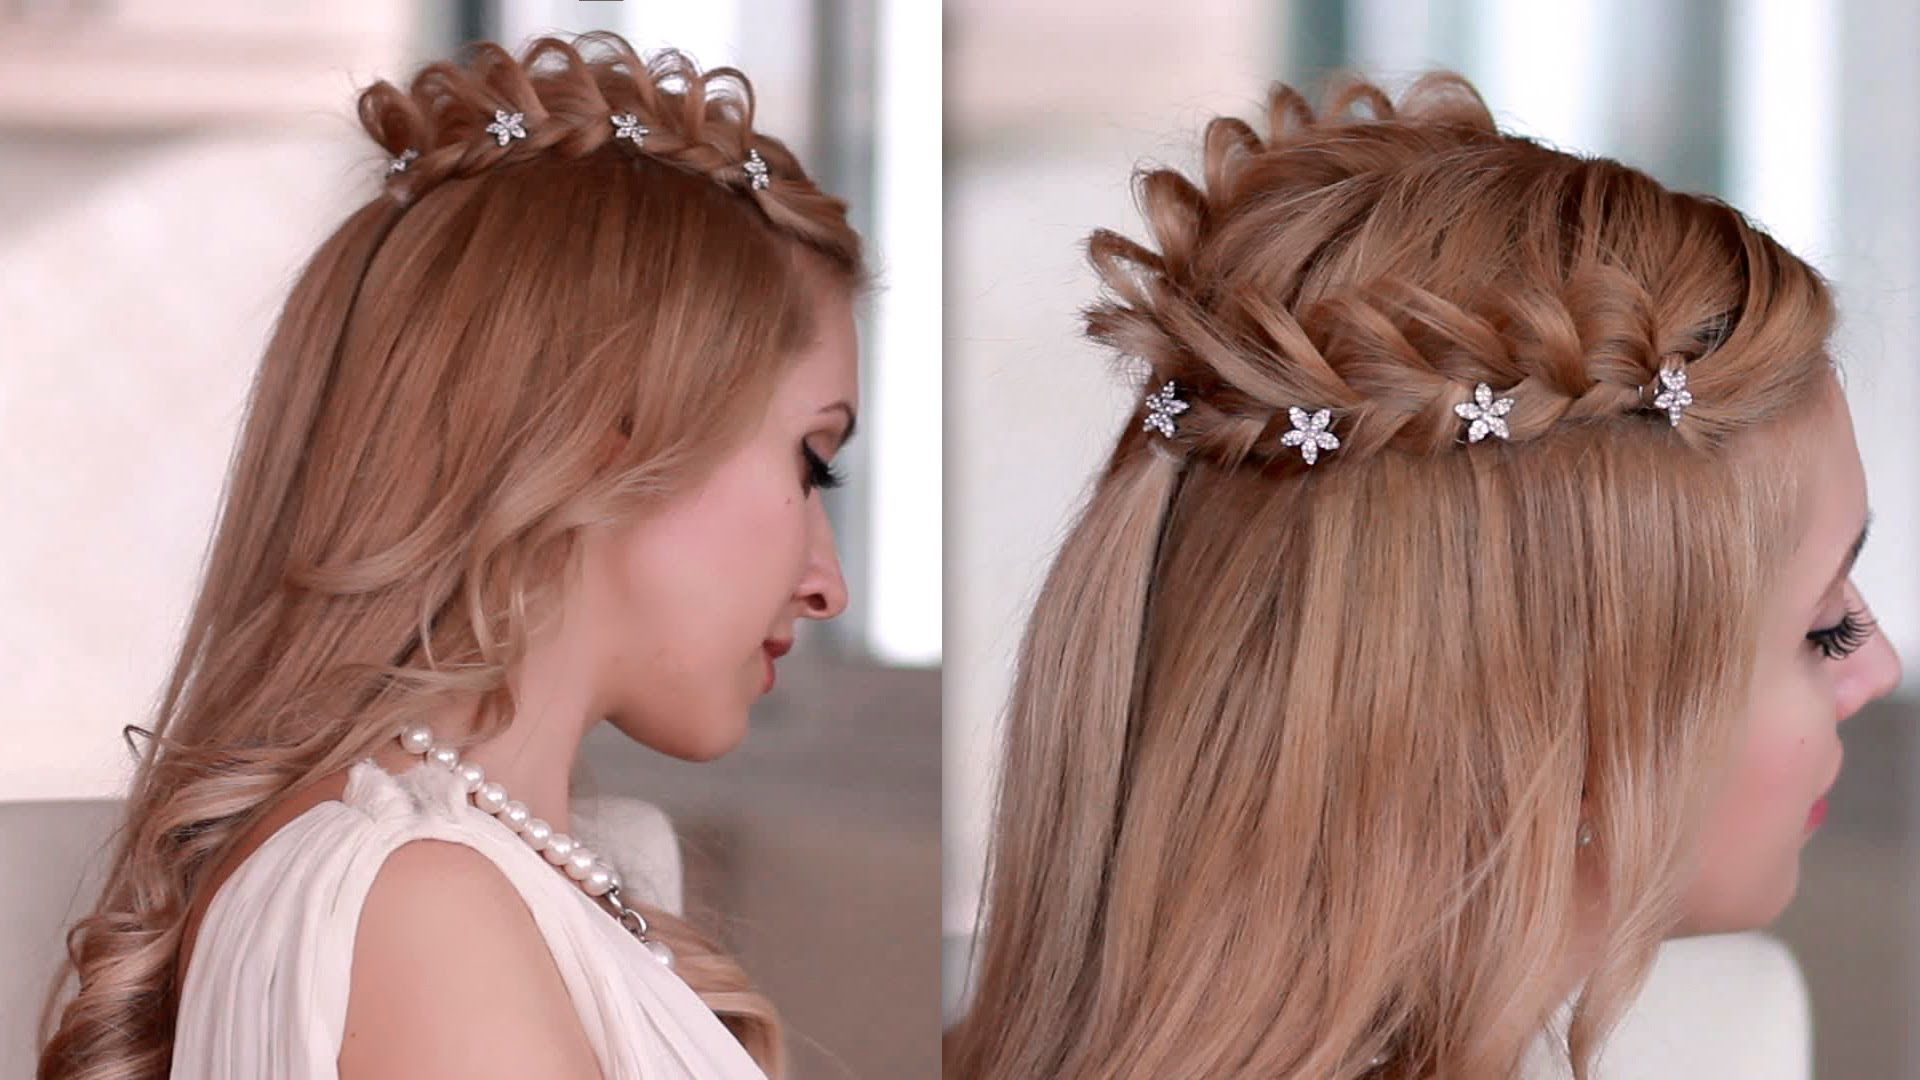 Braided Crown Halo Hairstyle For Medium Long Hair Princess Fairy Goddess Cosplay Hair Tutorial Medium Hair Styles Long Hair Styles Braided Crown Hairstyles